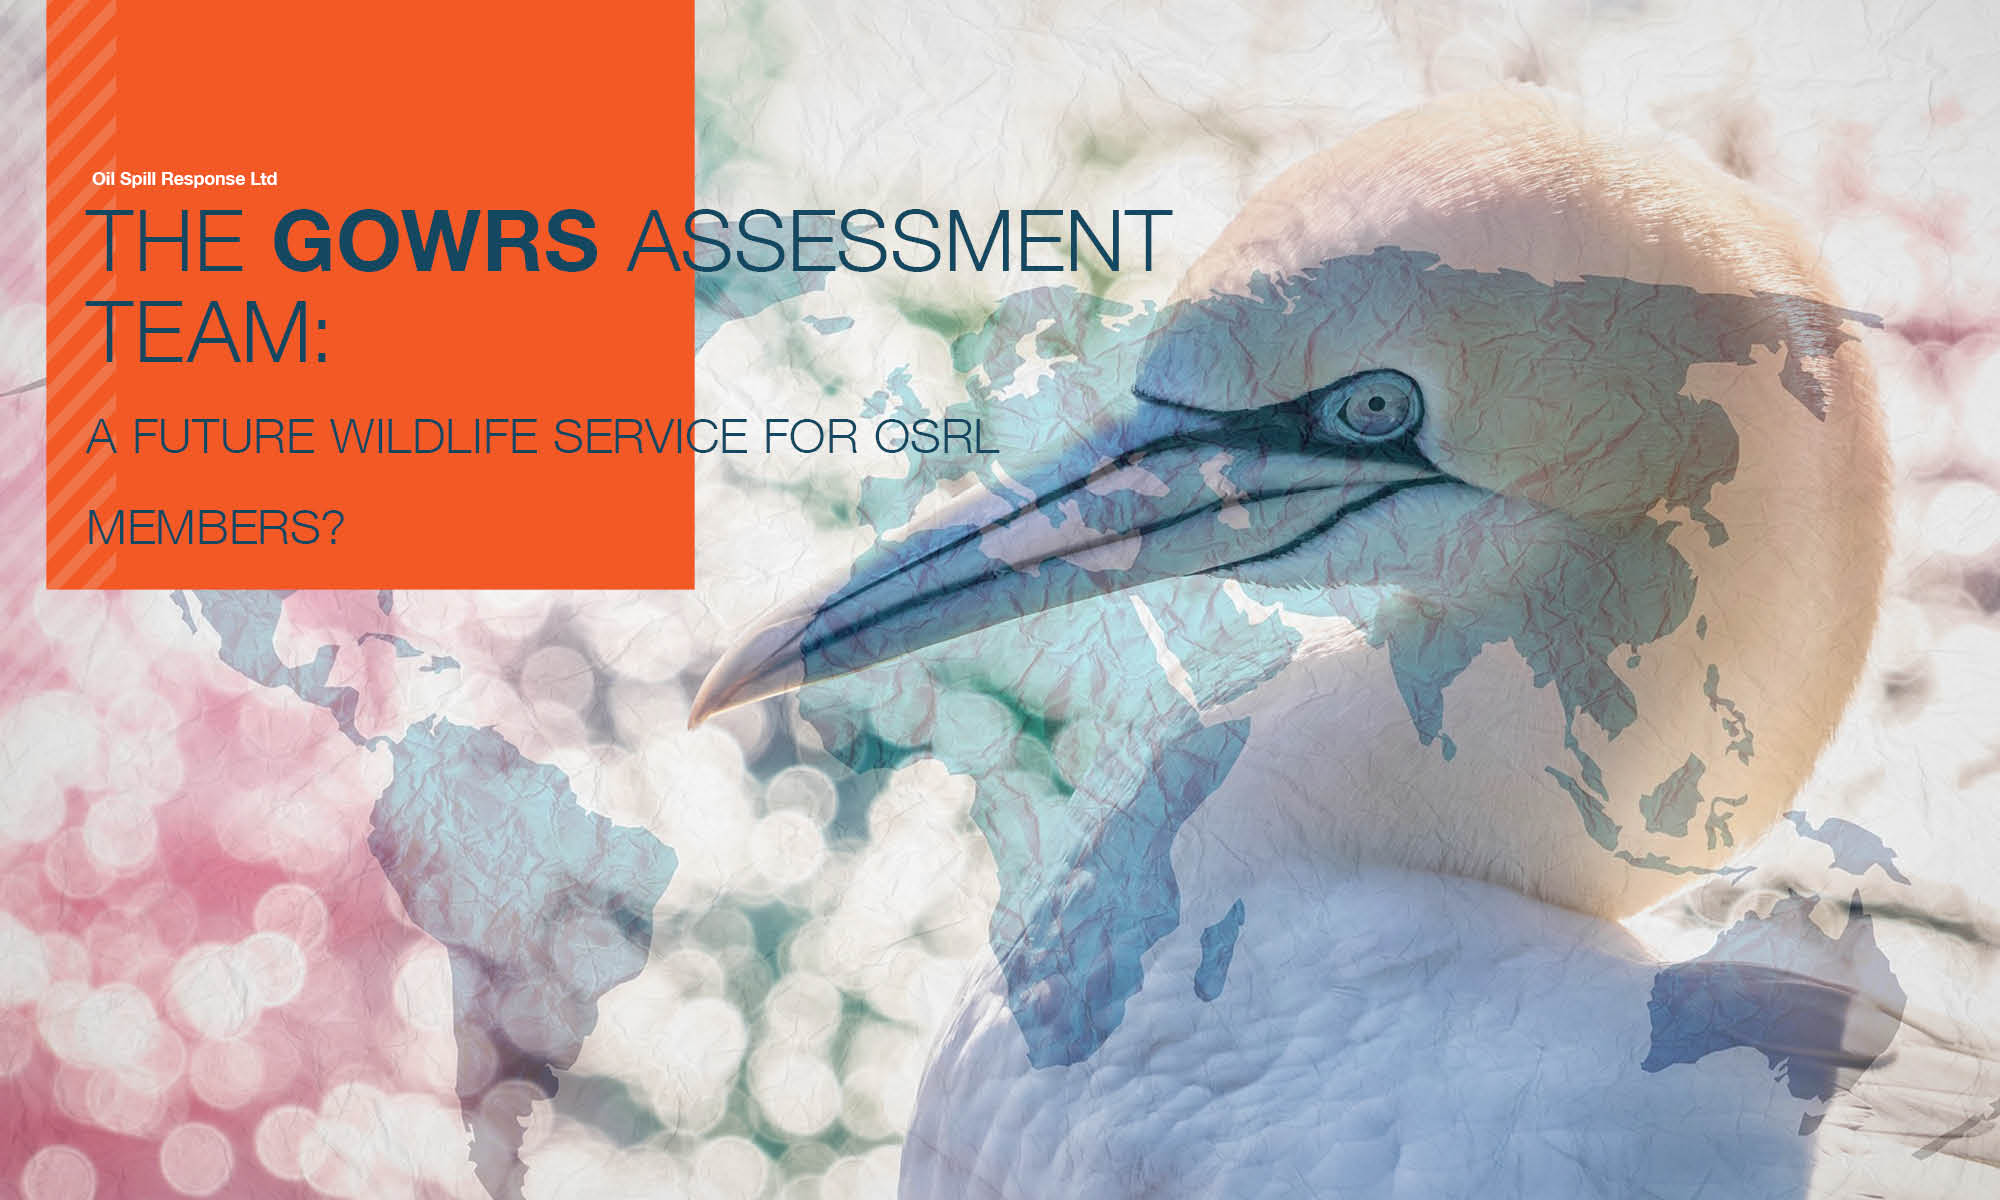 Recorded Webinar: The GOWRS Assessment Team - A future wildlife service for OSRL Members